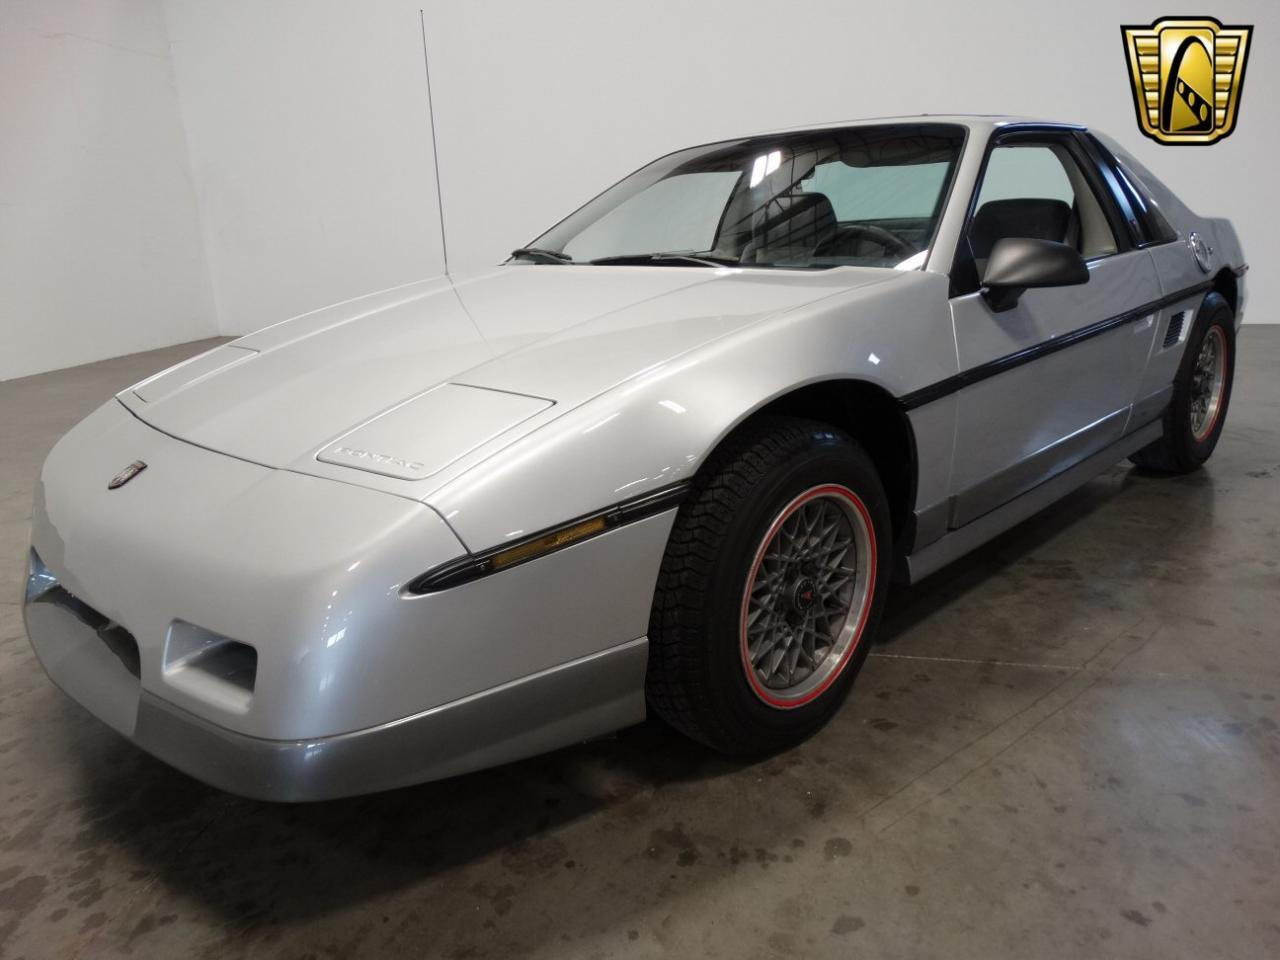 Large Picture of '85 Fiero located in Tennessee - $6,995.00 - KDWK